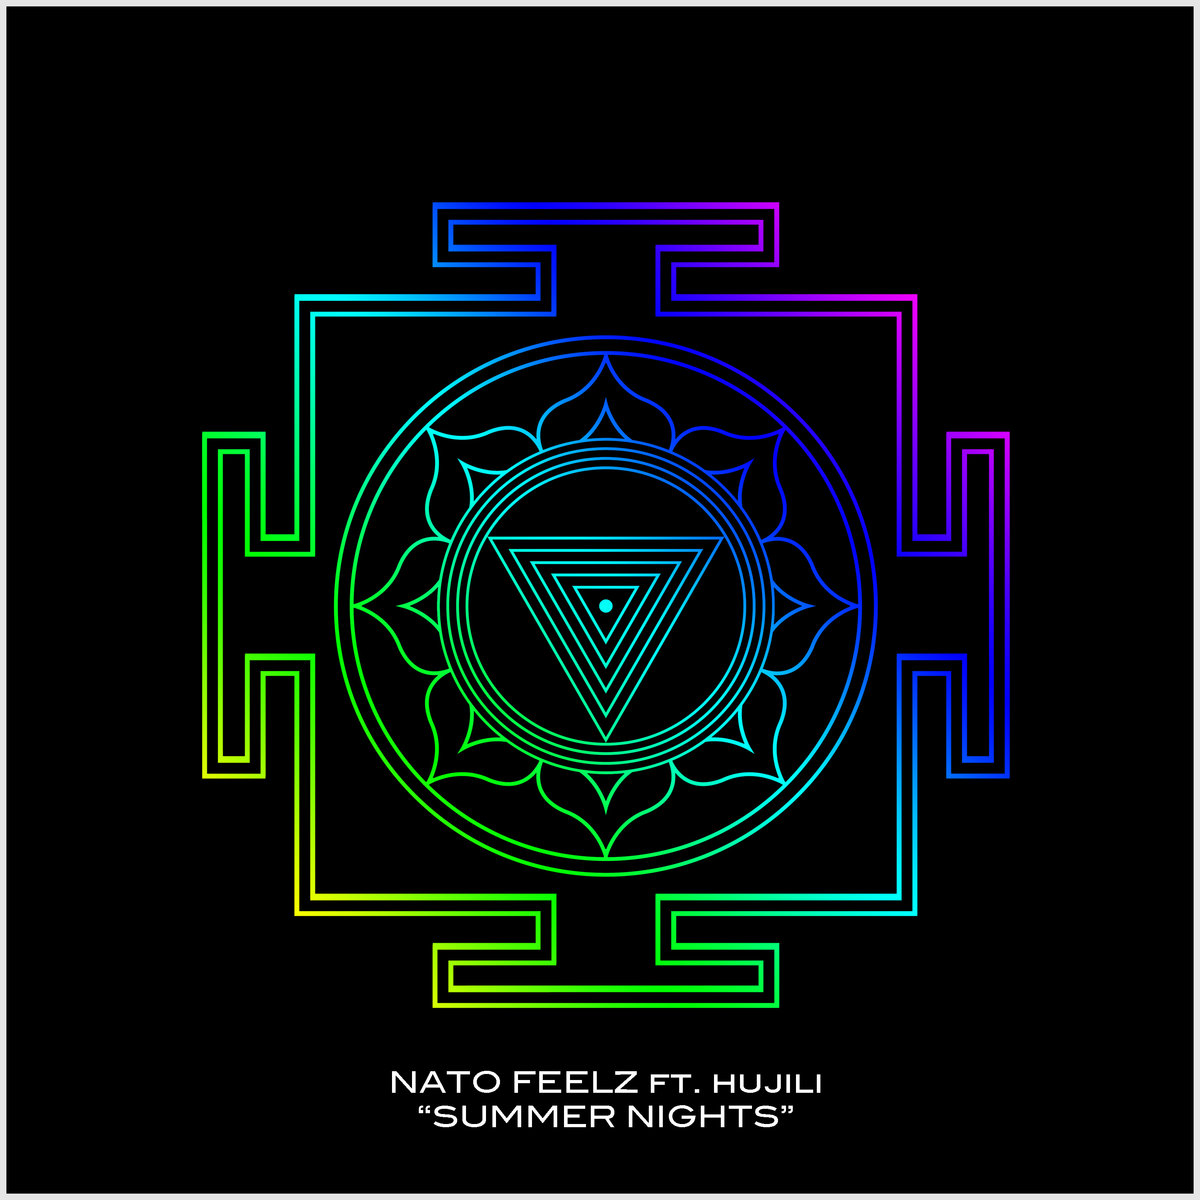 Nato Feelz feat. hujili - Summer Nights @ 'Summer Nights ft hujili' album (electronic, dubstep)